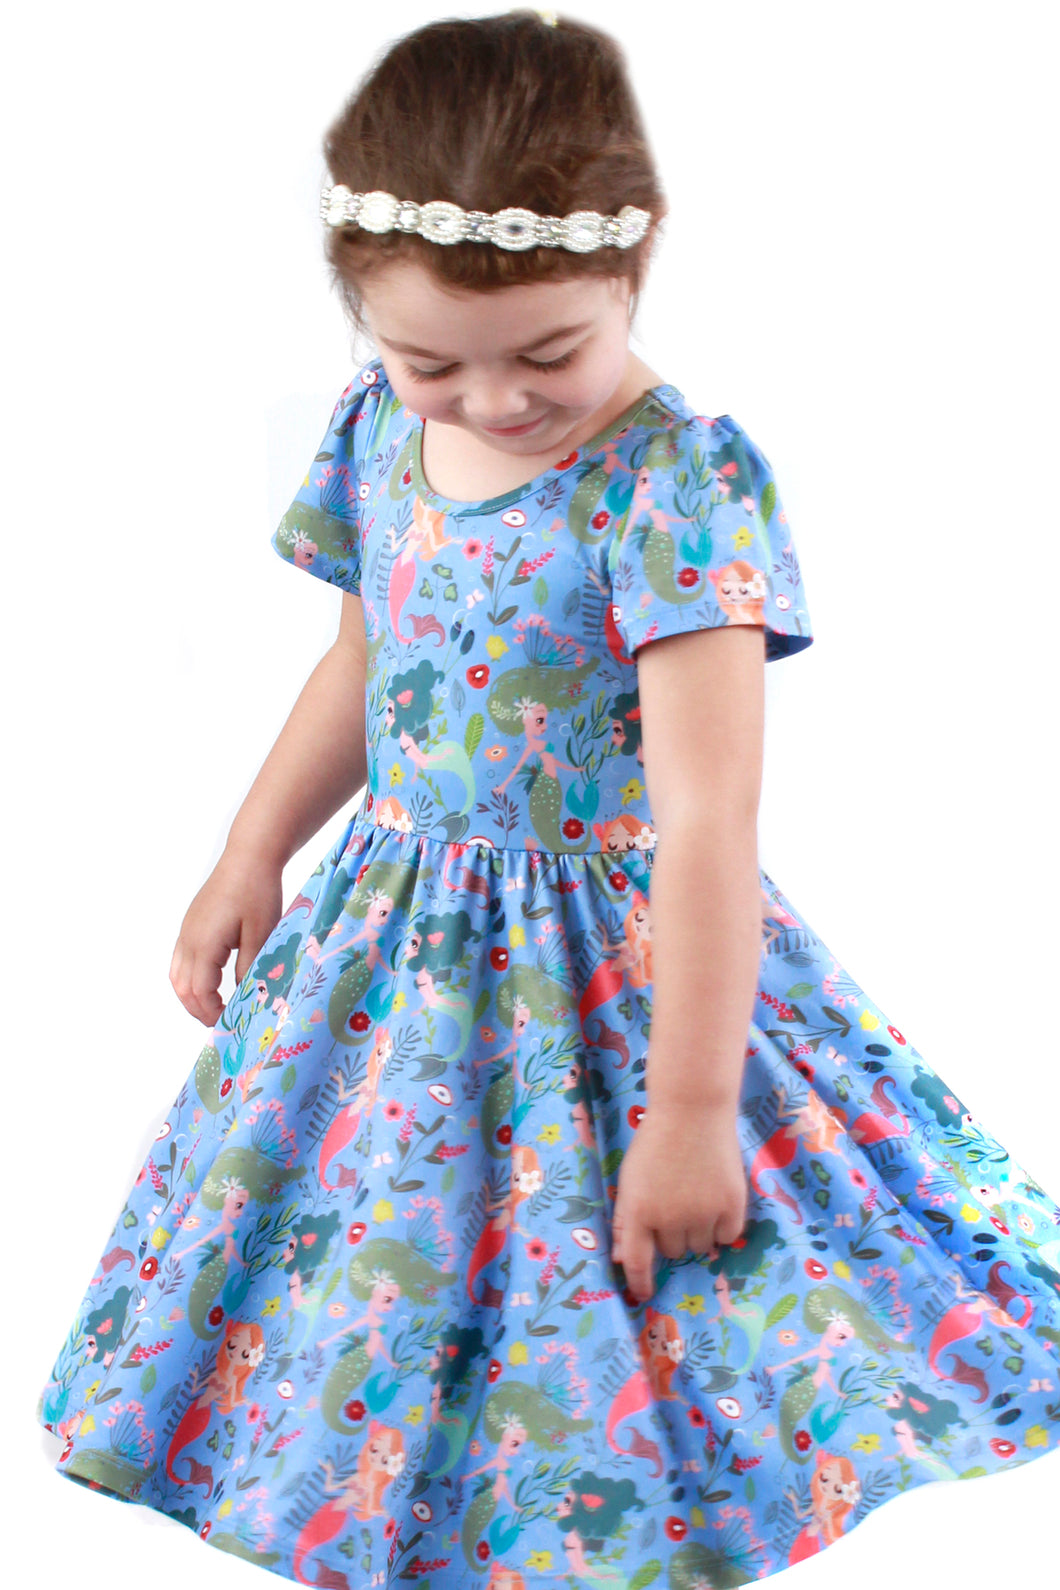 Mermaids Bailey Dress